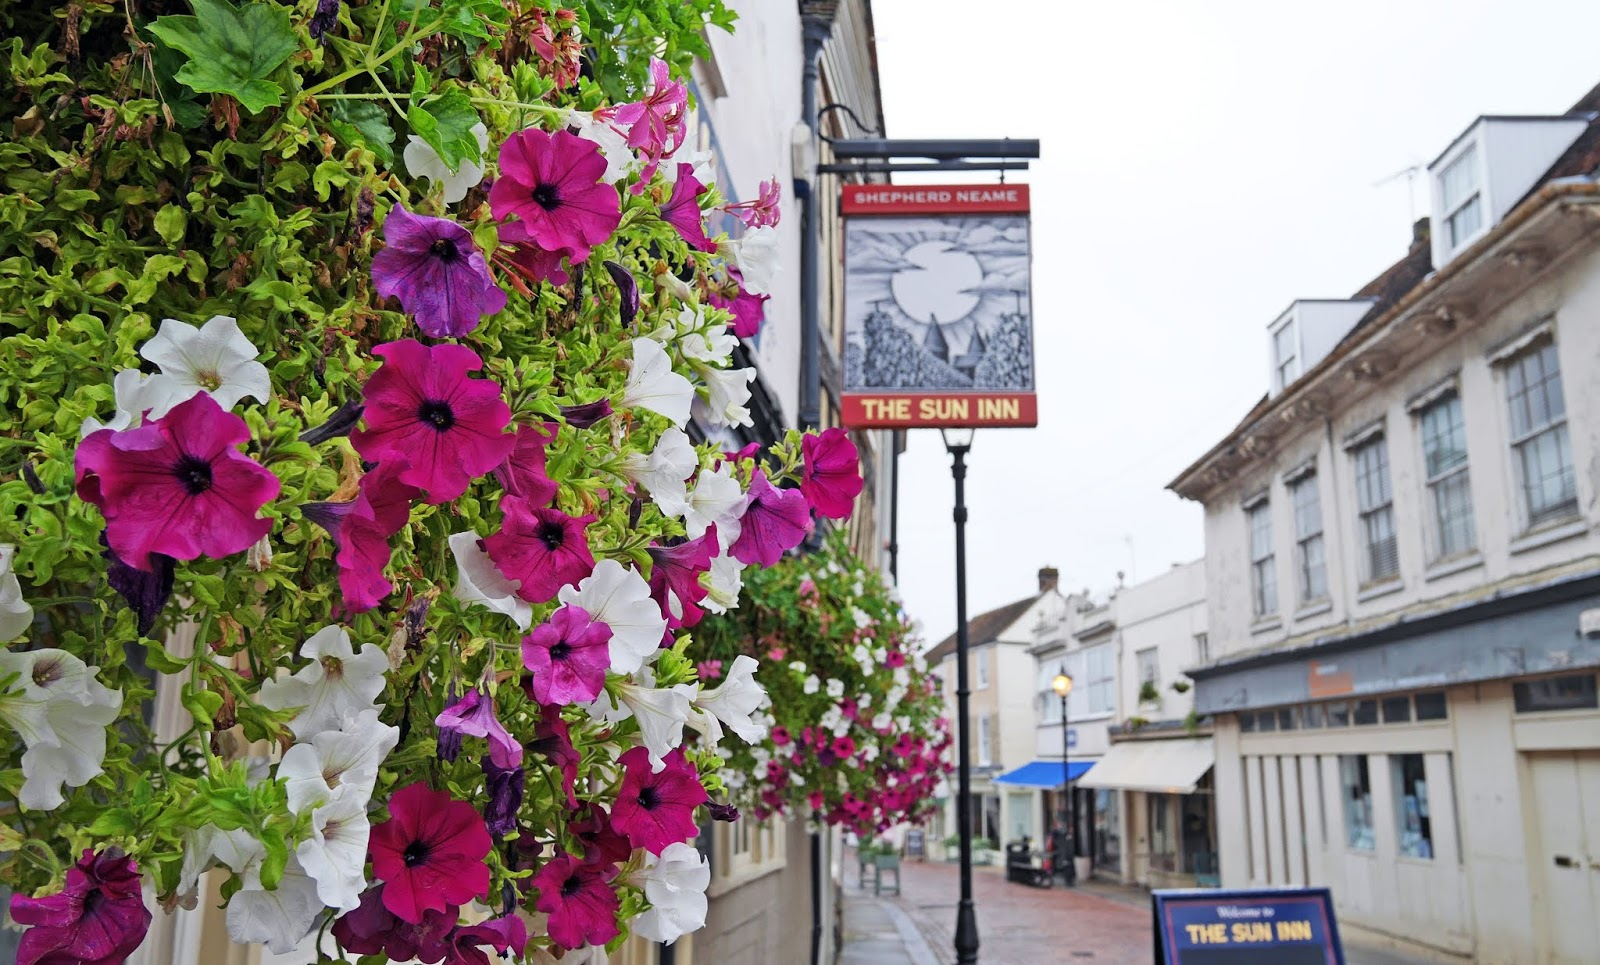 Flowers outside The Sun Inn in Faversham, Kent